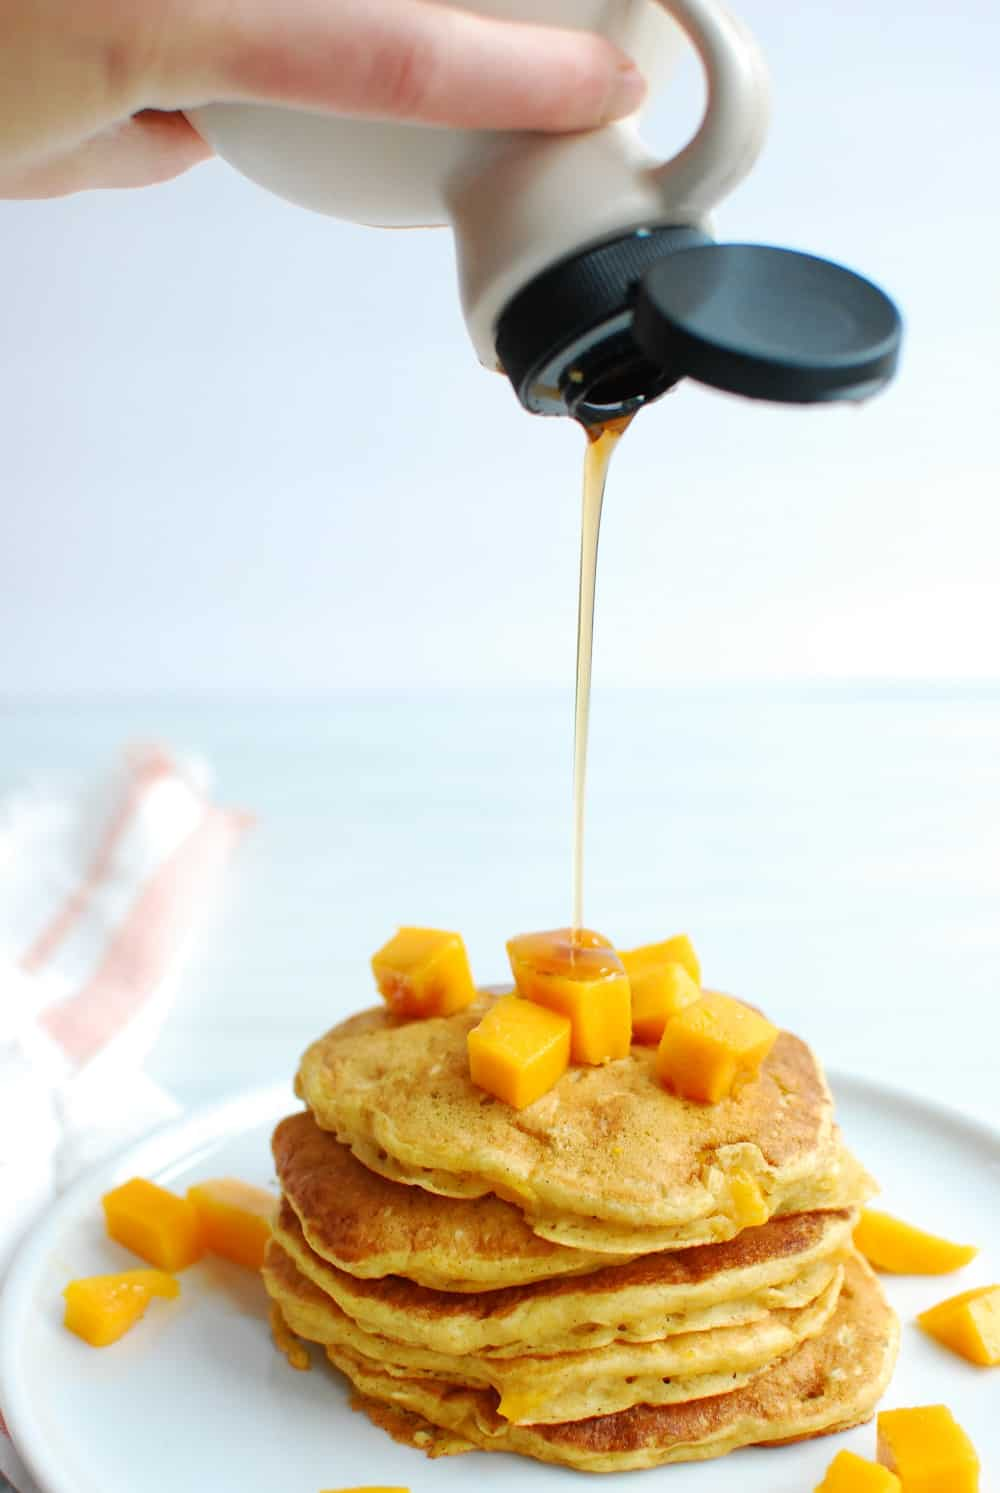 a woman pouring maple syrup onto a stack of pancakes